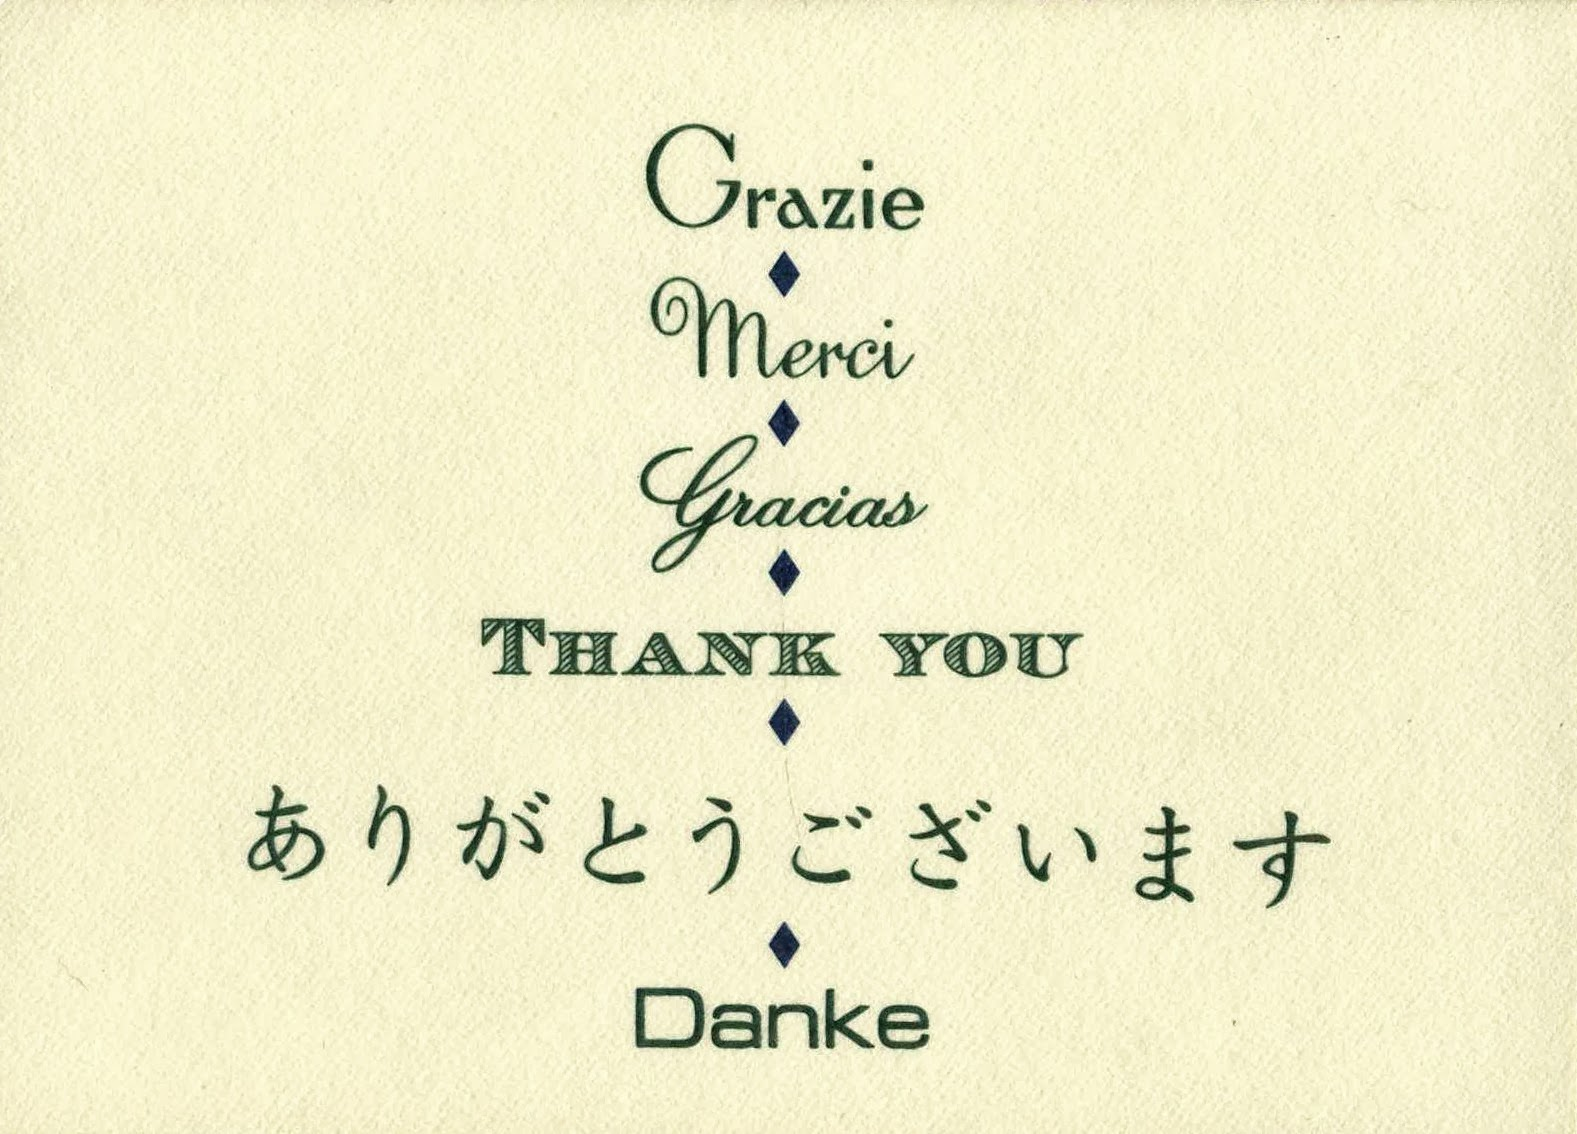 Writing thank you notes pkhowto Thank you in calligraphy writing